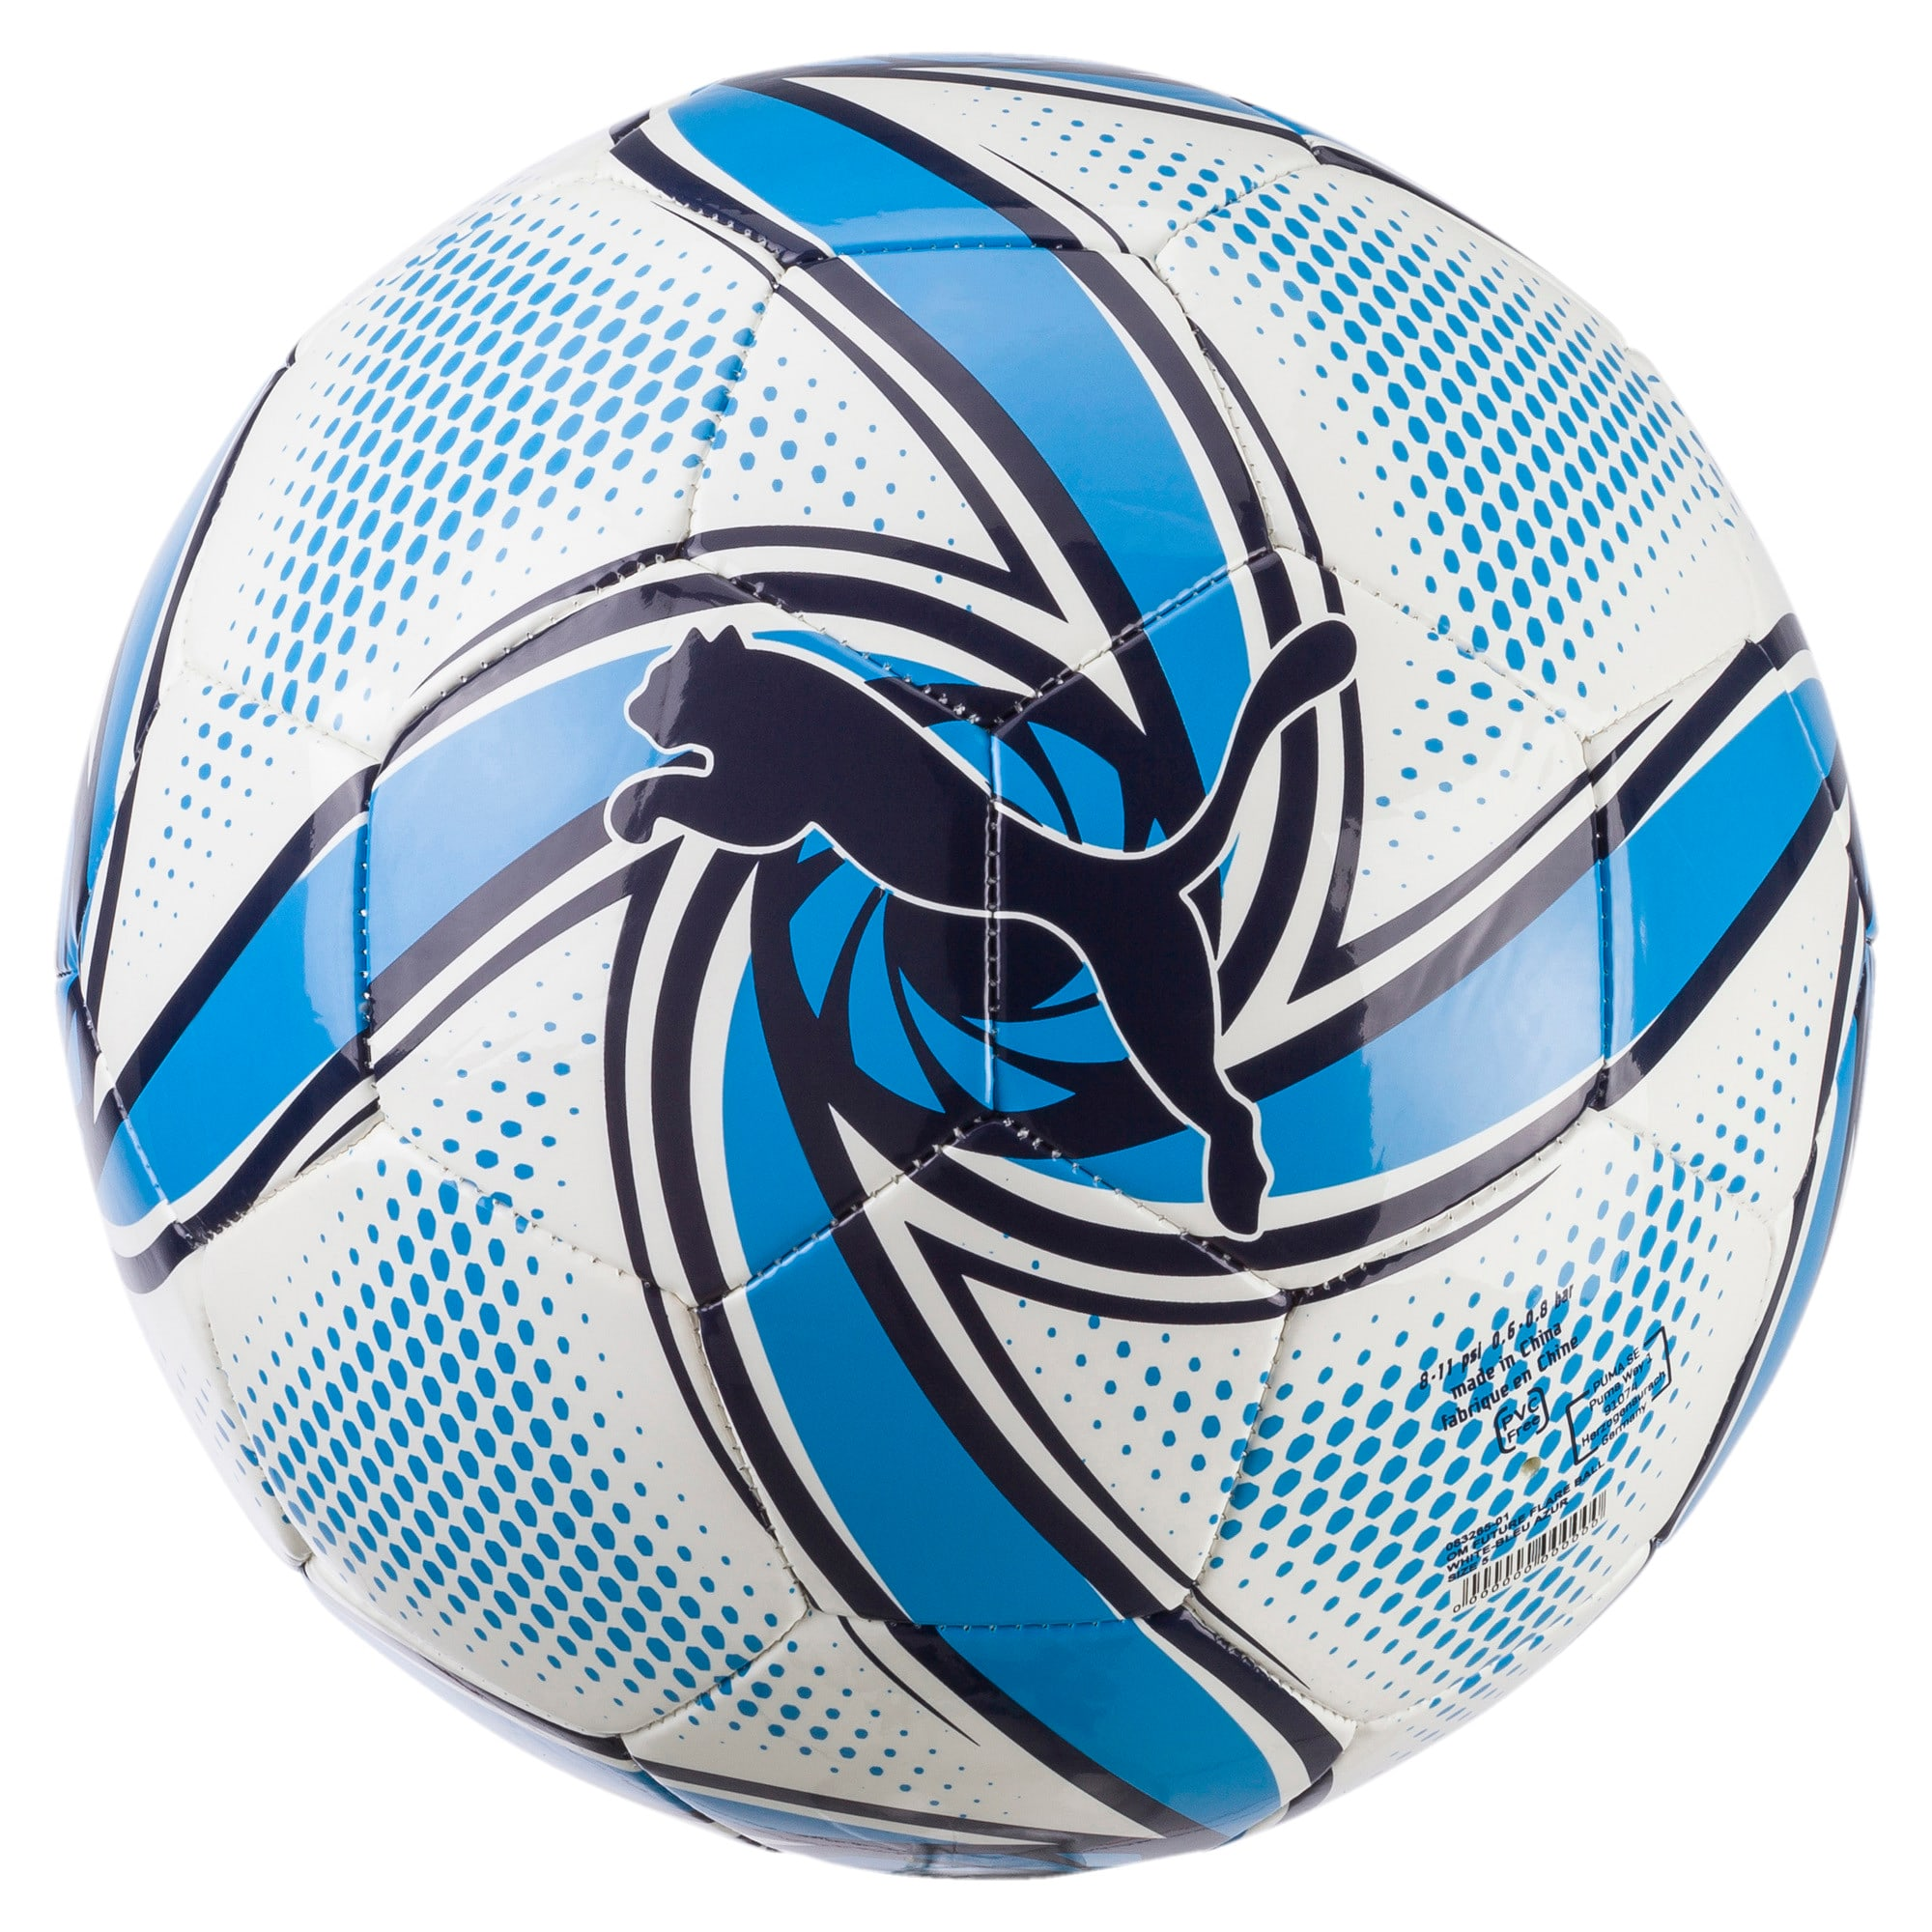 Thumbnail 1 of Olympique de Marseille FUTURE Flare Ball, Puma White-Bleu Azur, medium